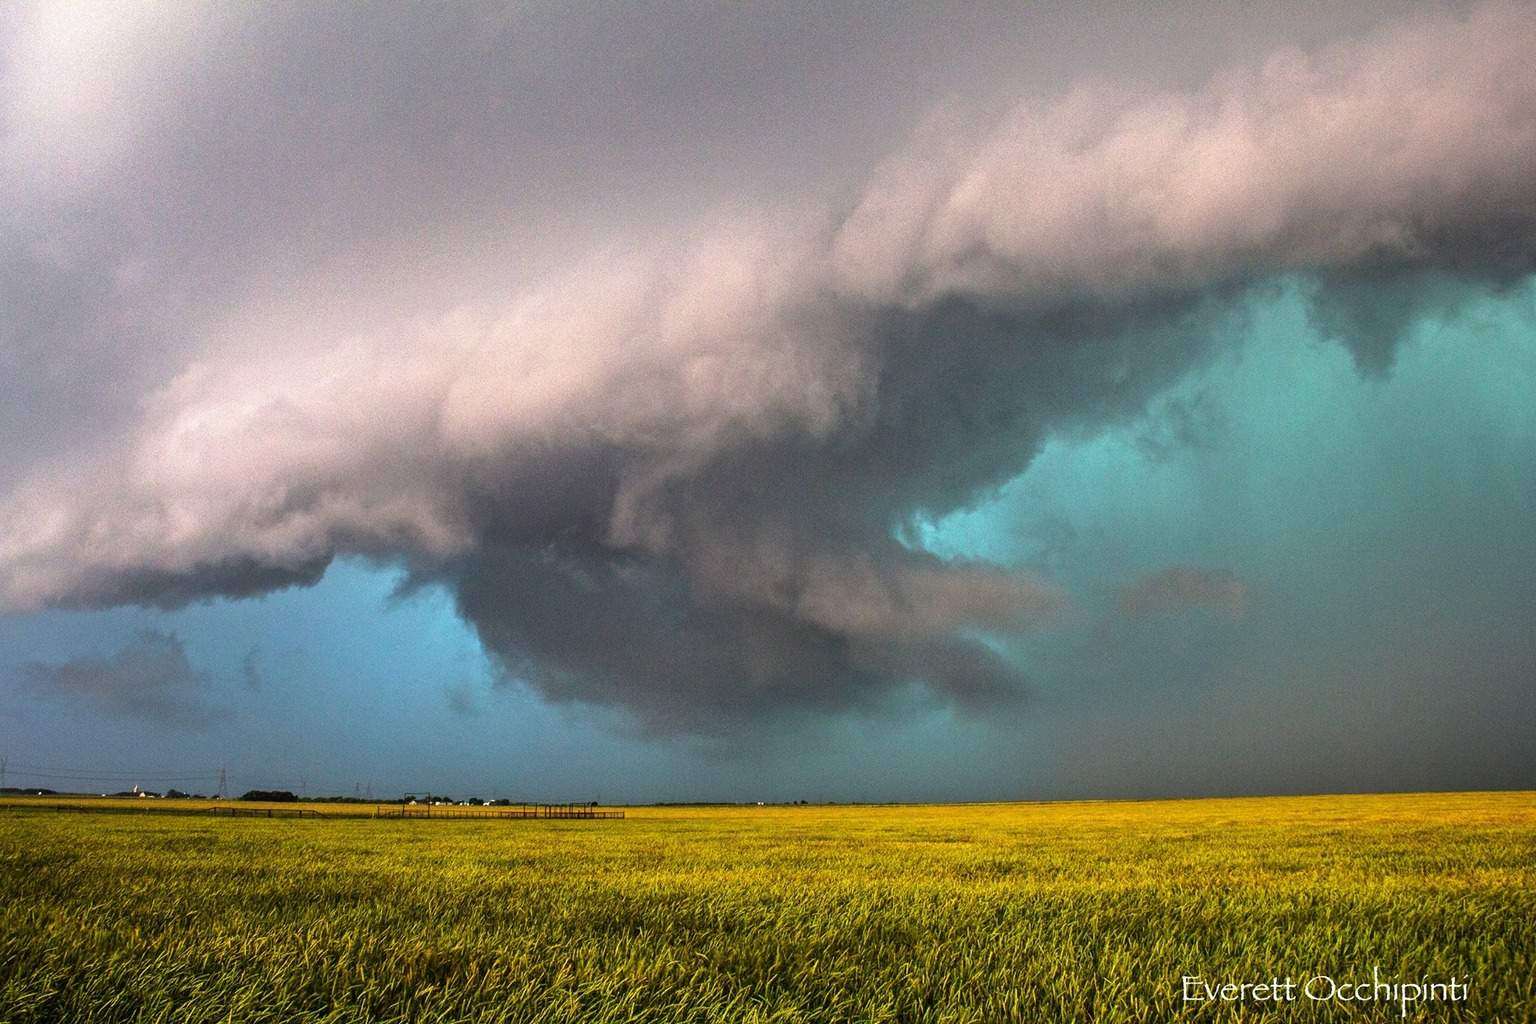 Incredible tornado warned storm near Electra, TX on May 8th.